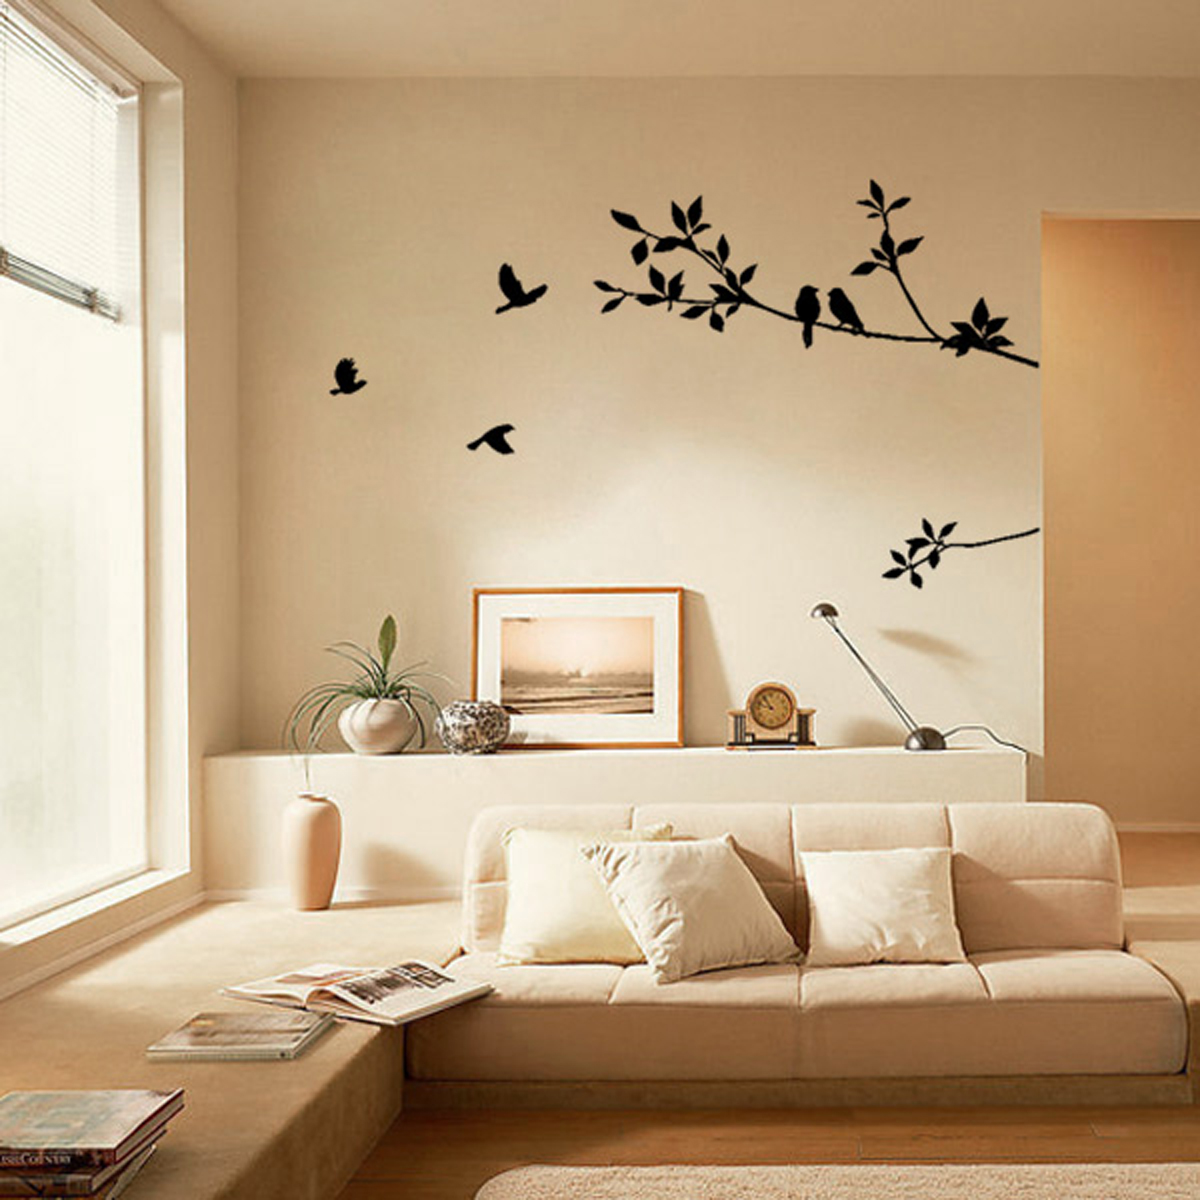 Multi Theme Quote Word Vinyl DIY Art Decal Wall Stickers Home - Diy wall decor birds